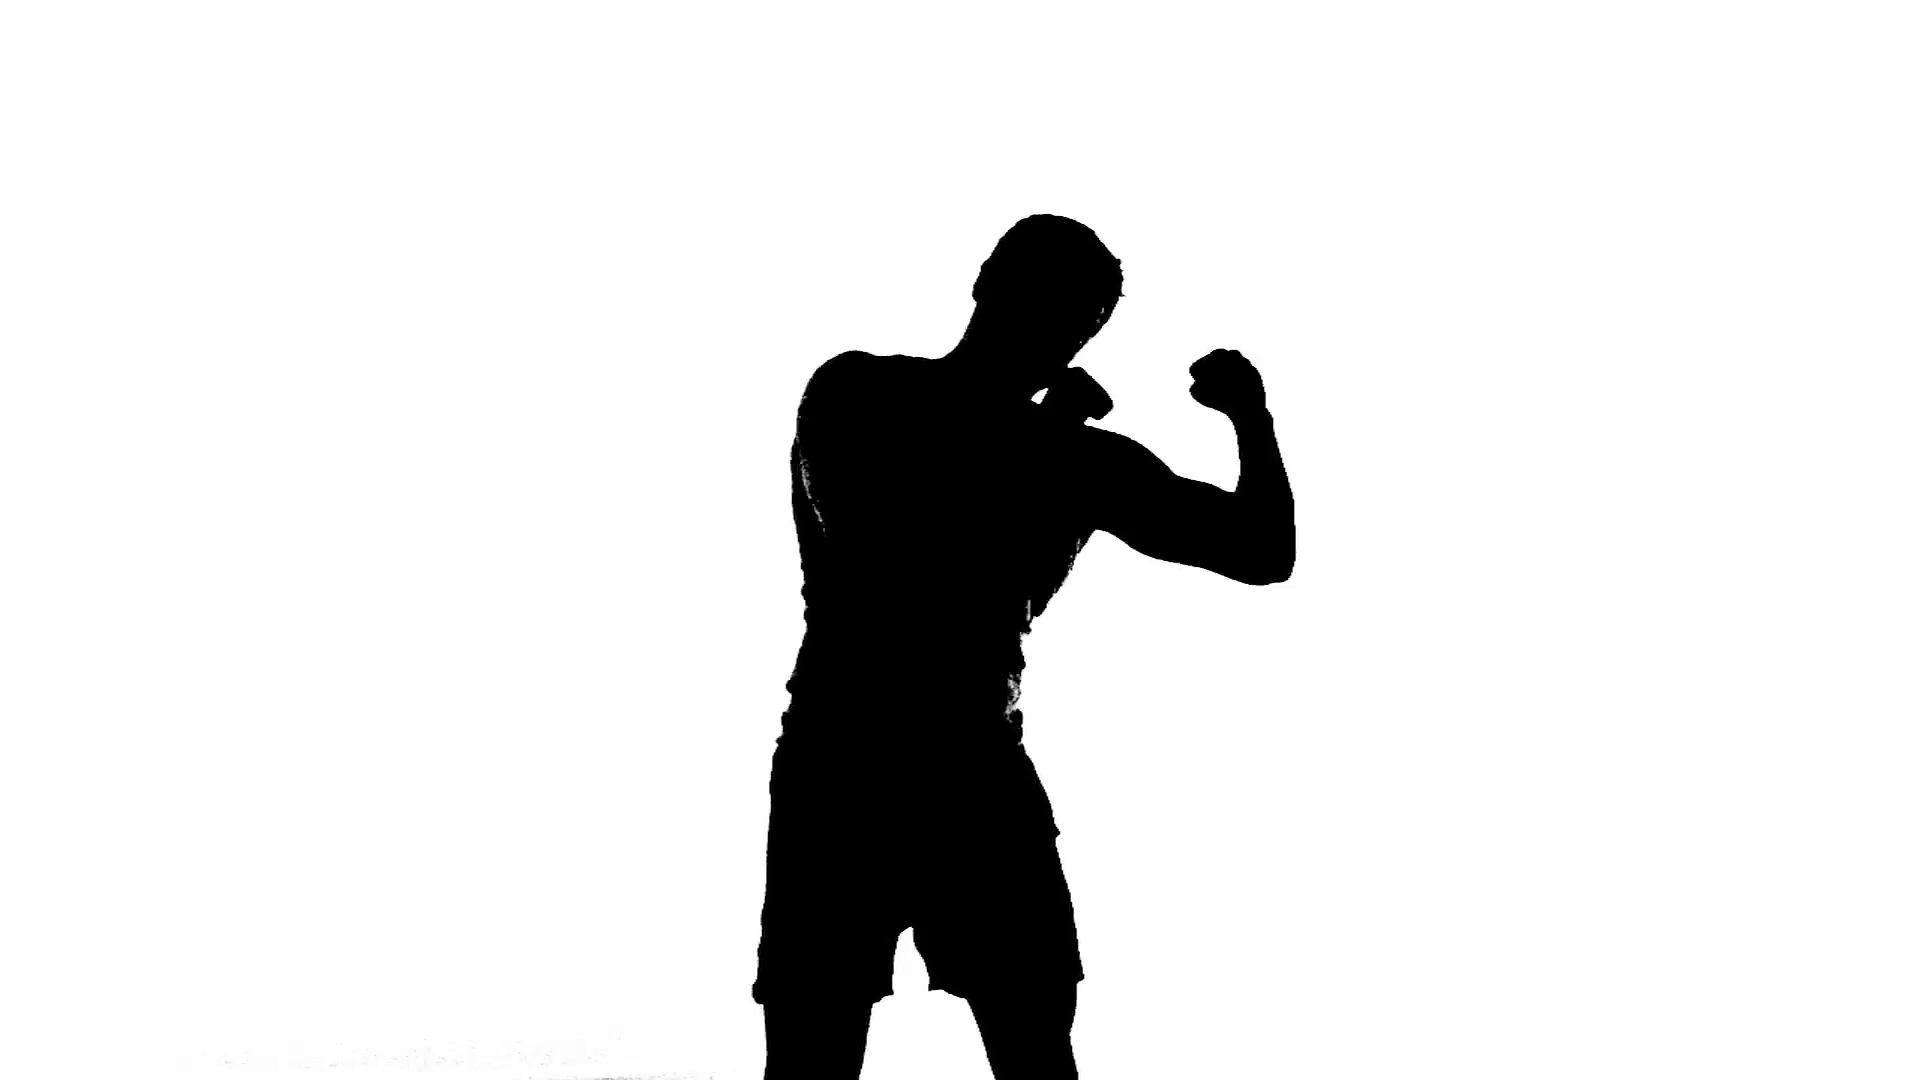 1920x1080 White Silhouette Sports, Flat, 3d, Background. Motion Background